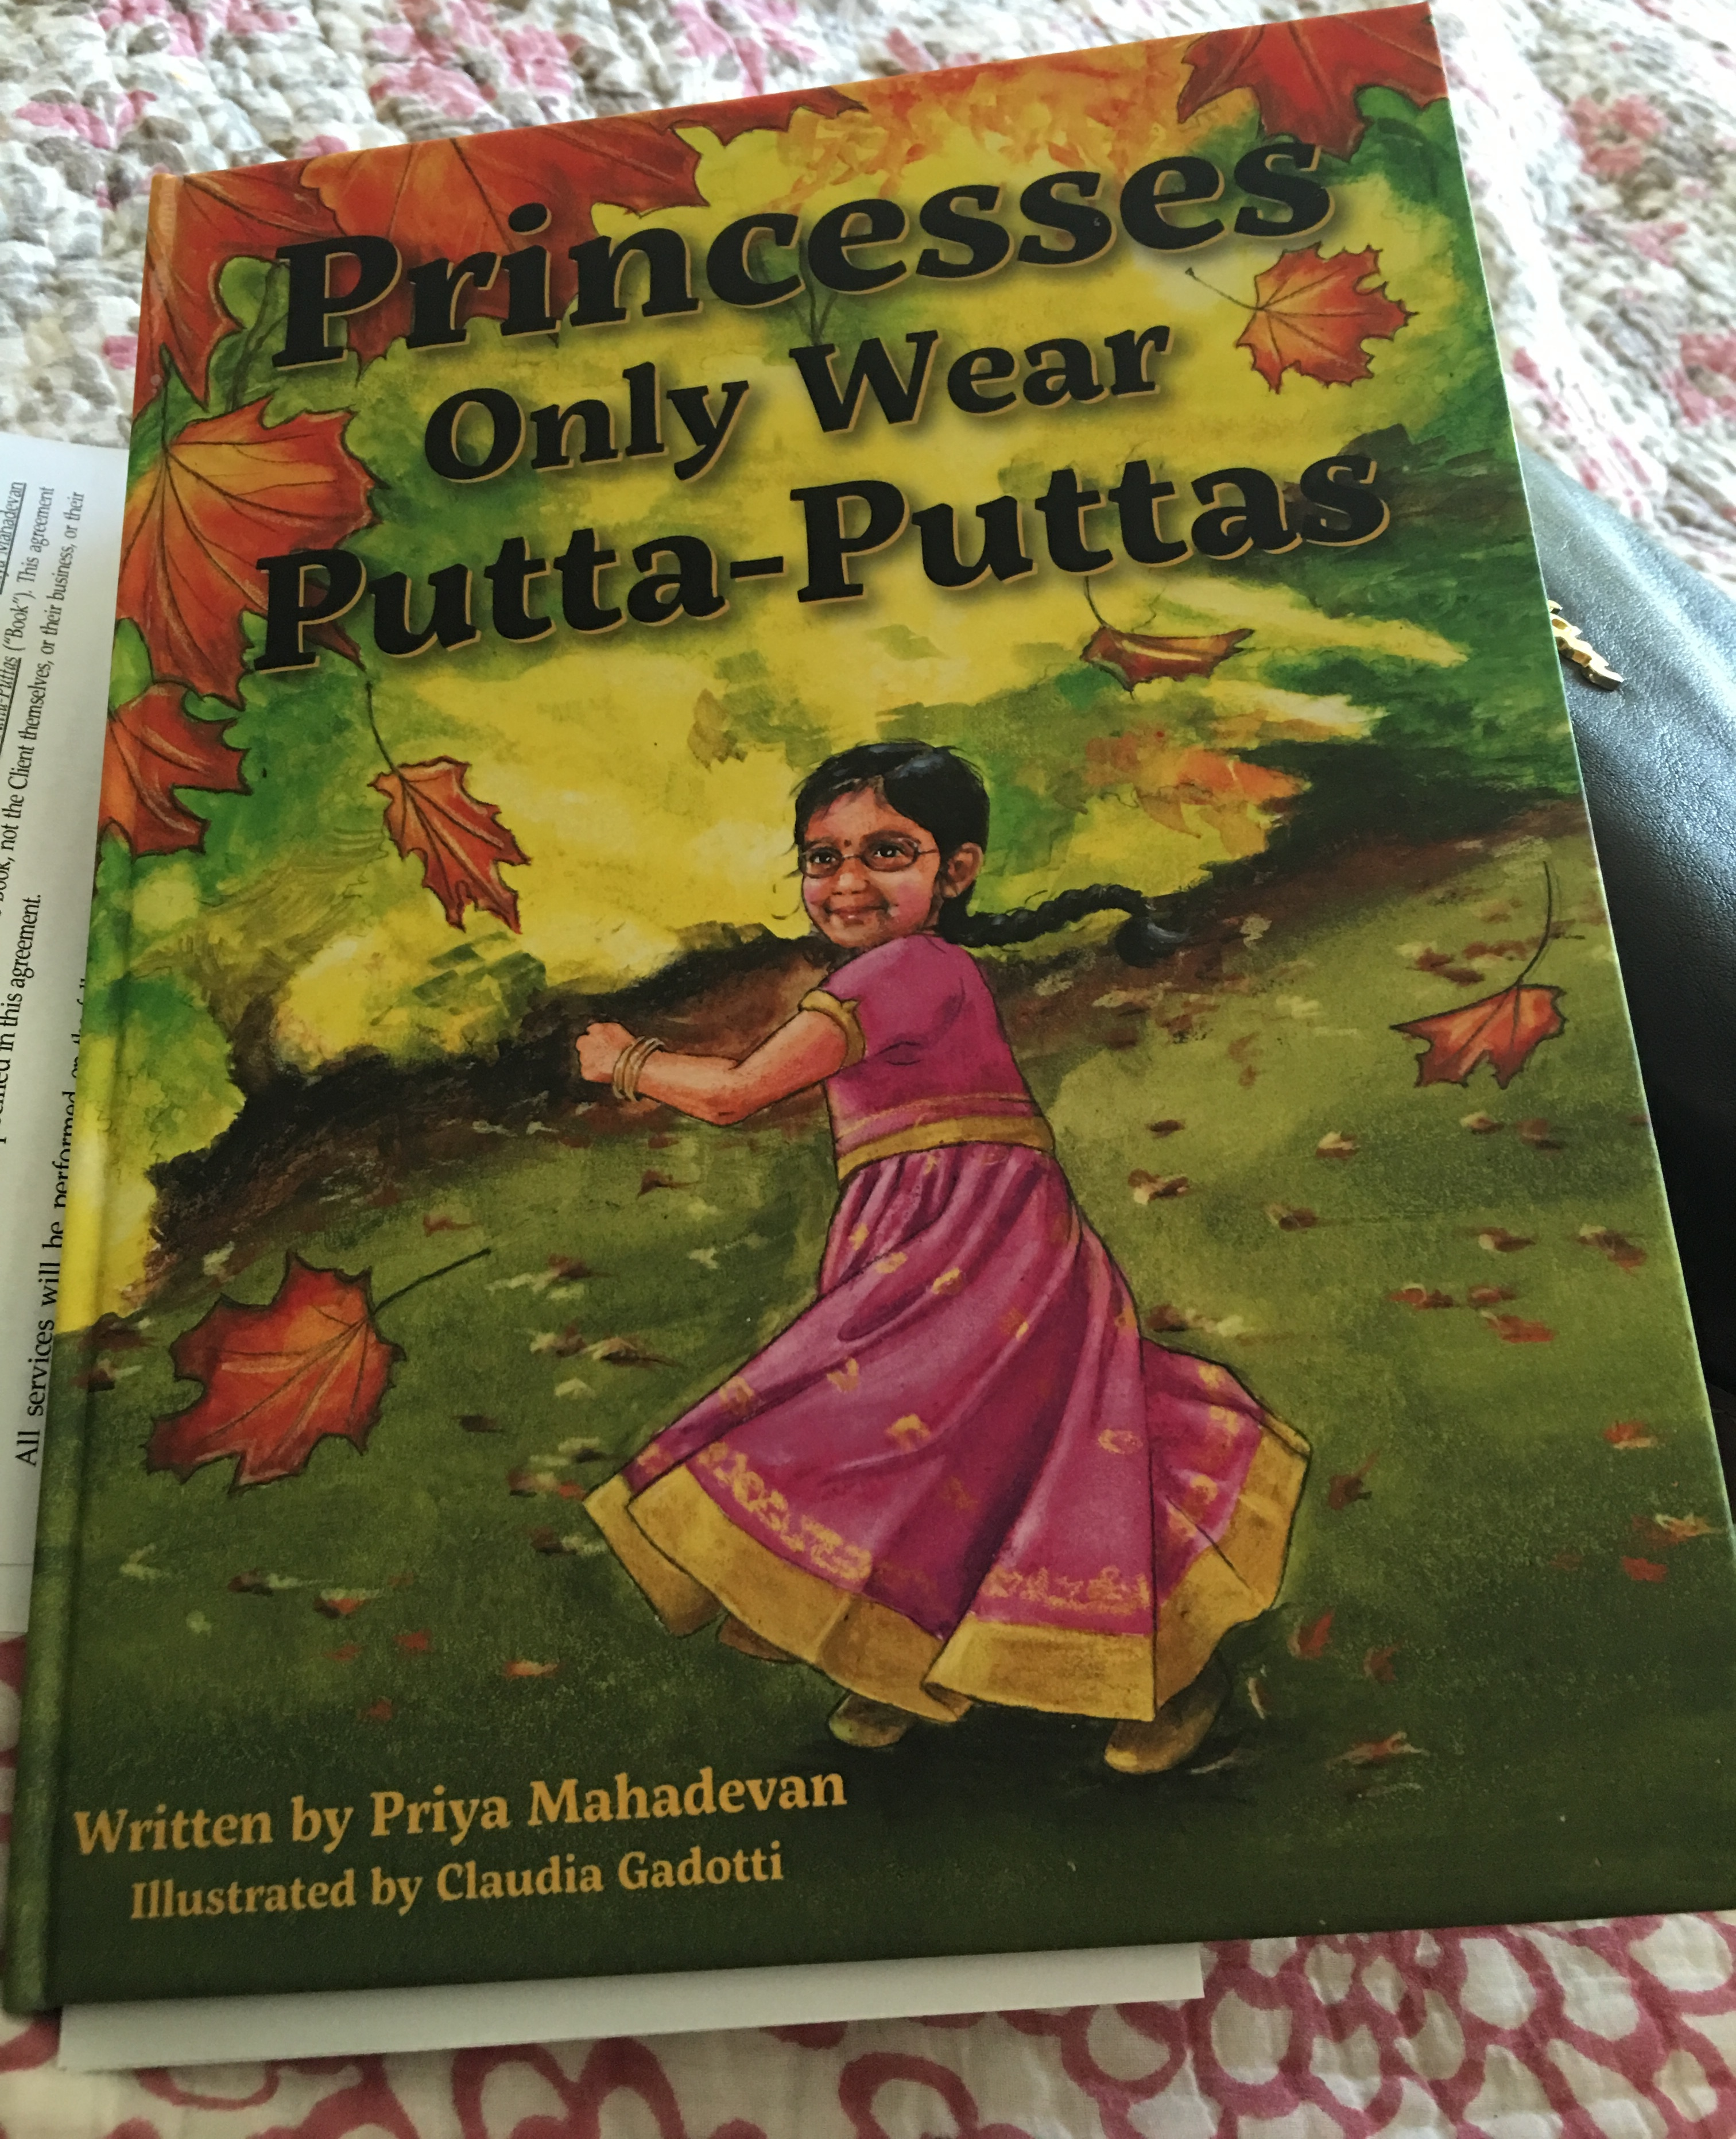 Princesses Only Wear Putta=Puttas